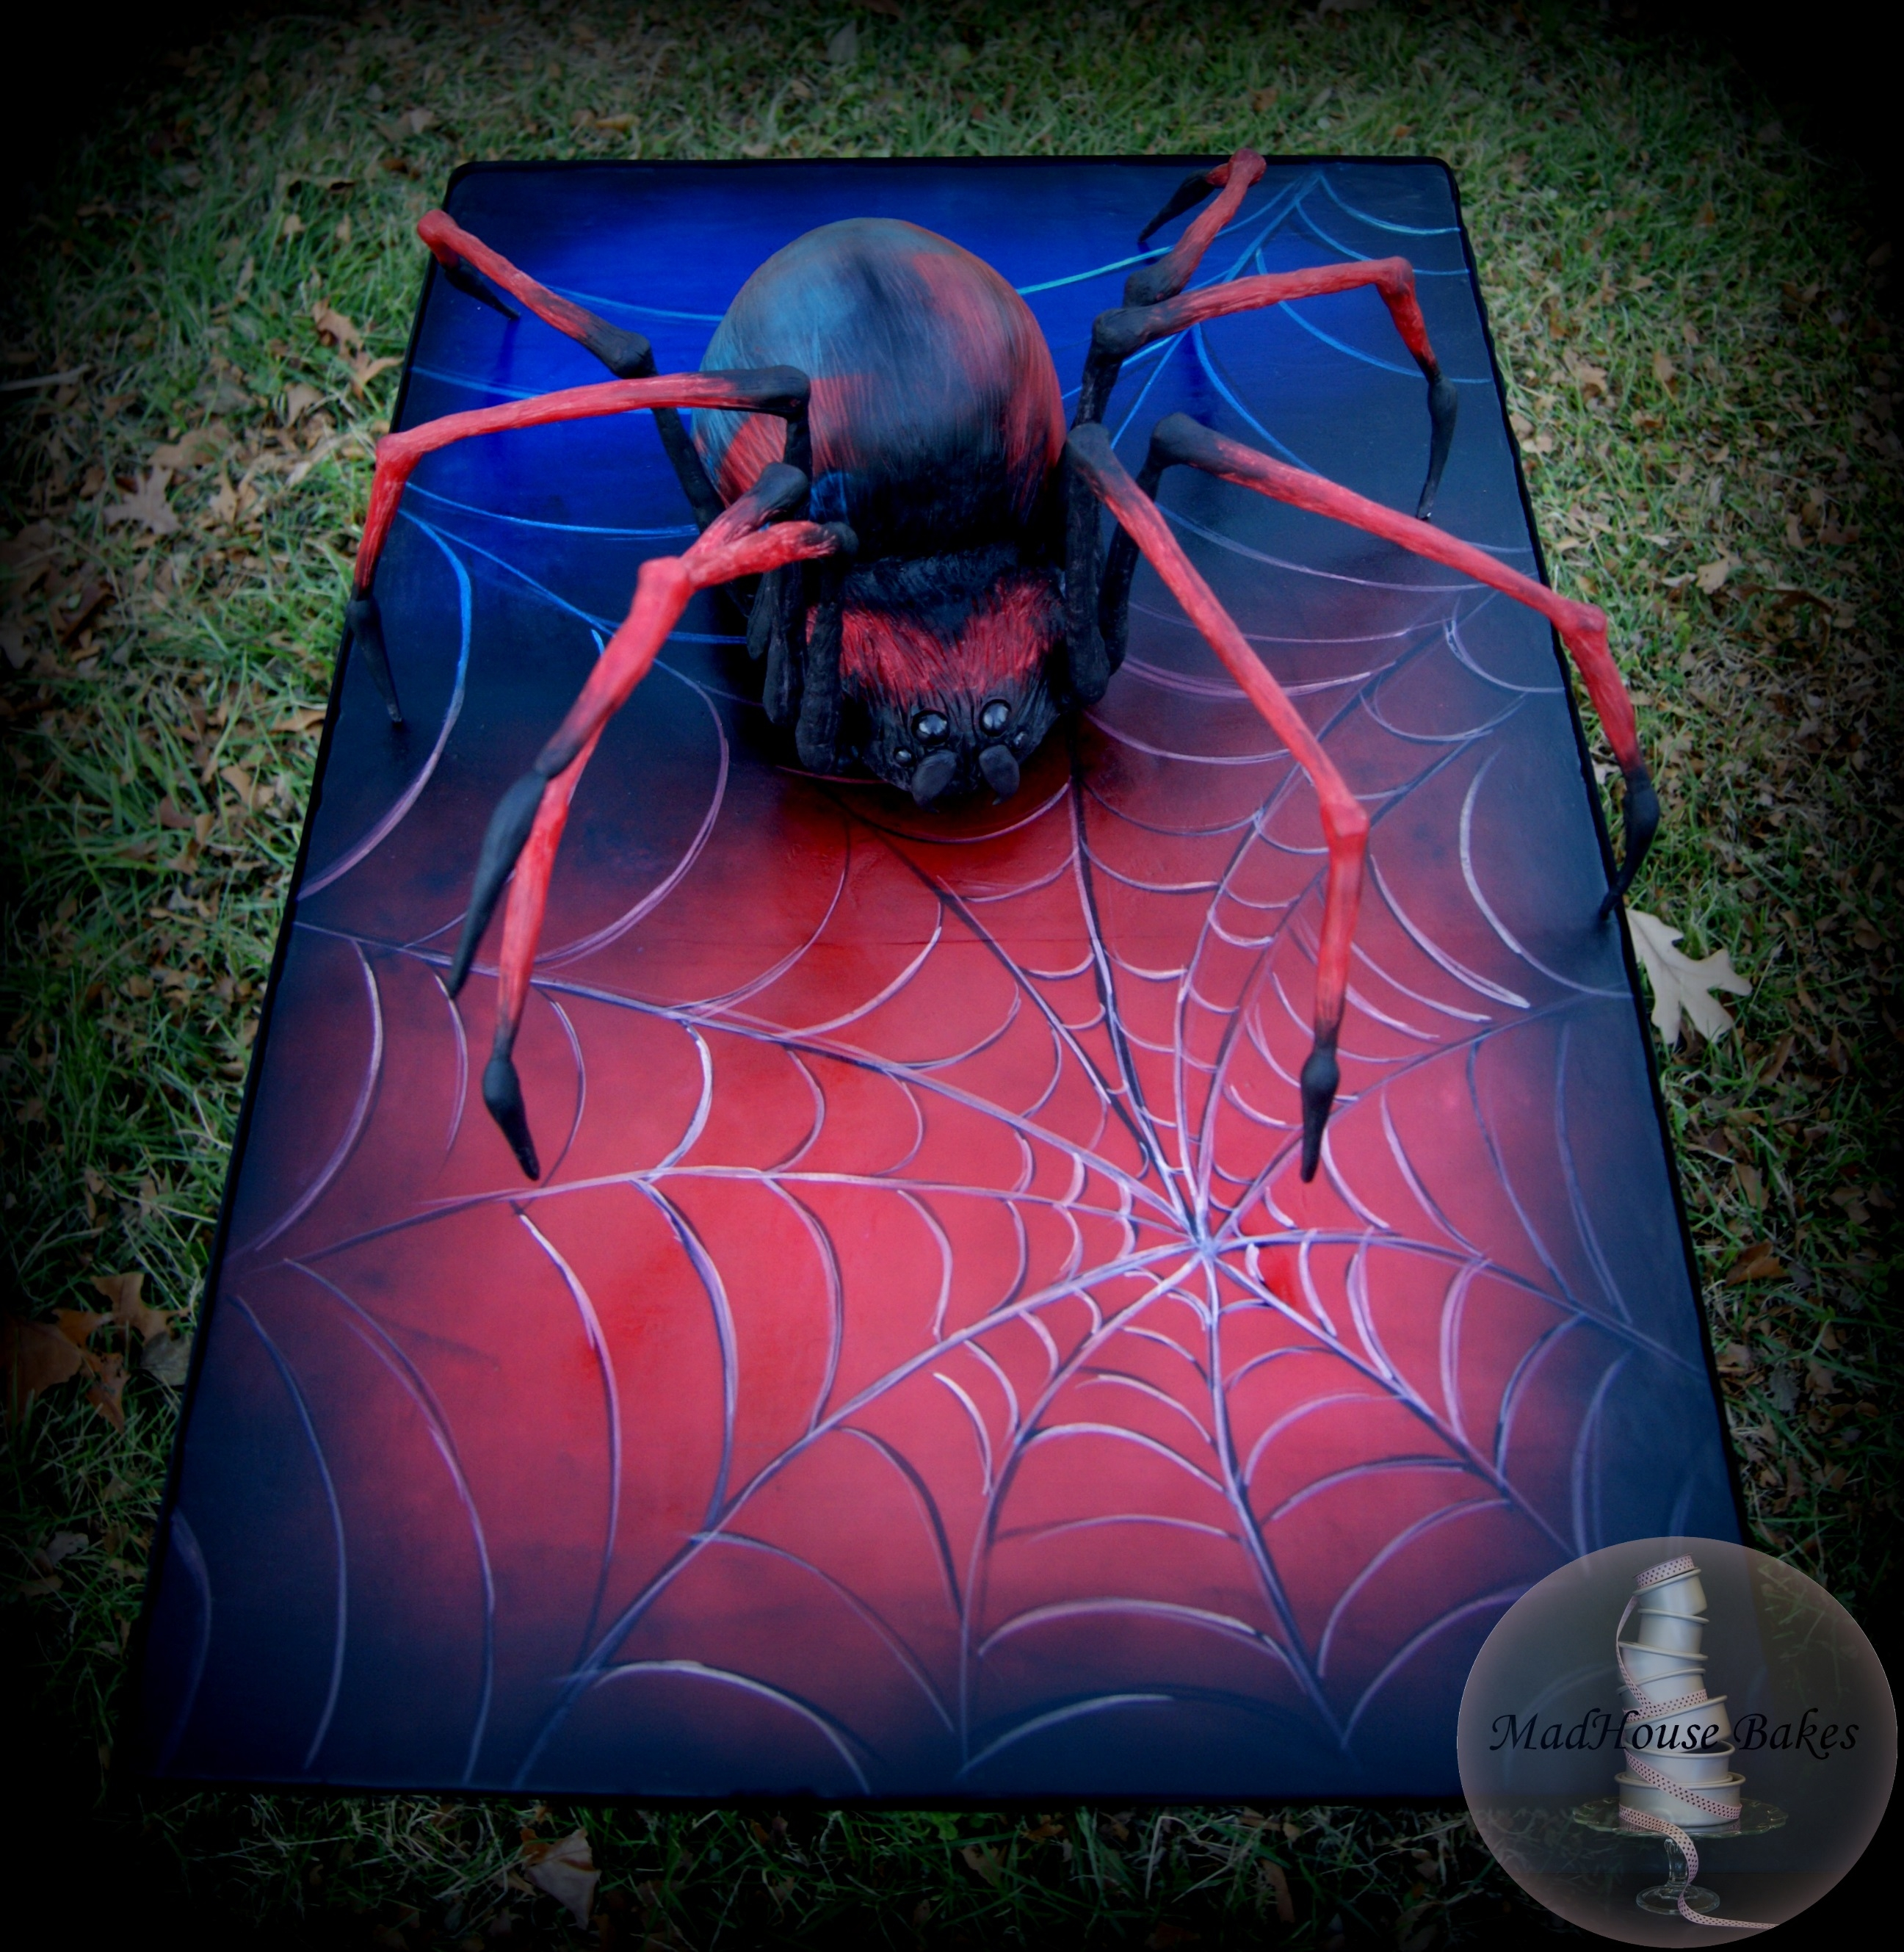 how to make a spider web on a cake